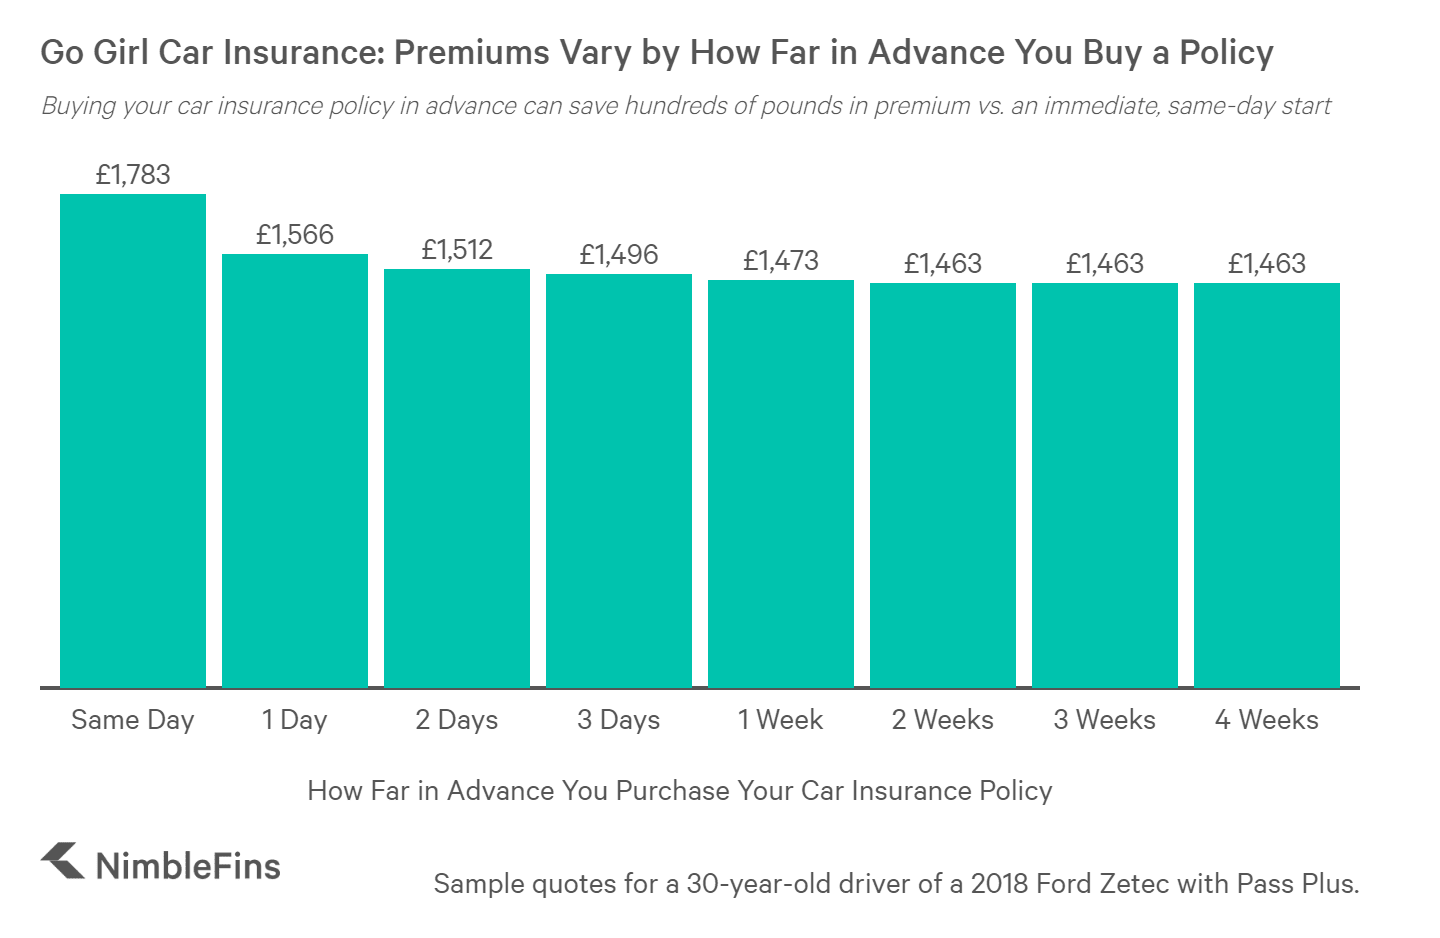 chart showing prices of Go Girl Car Insurance